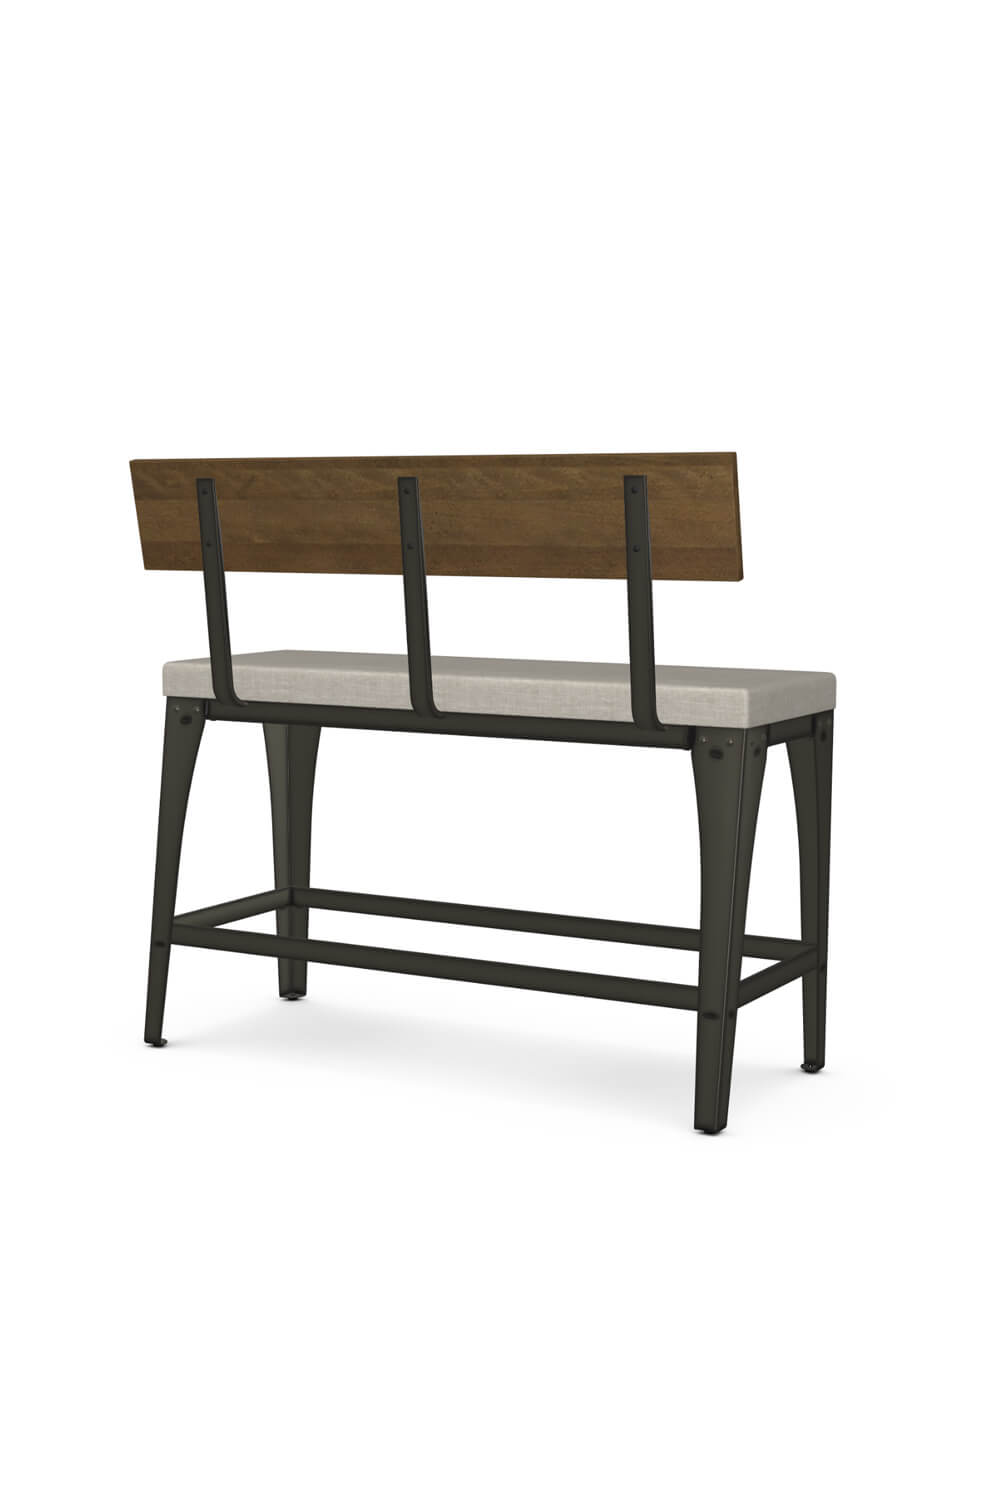 Picture of: Amisco S Architect Industrial Counter Height Bench With Back And Cushion